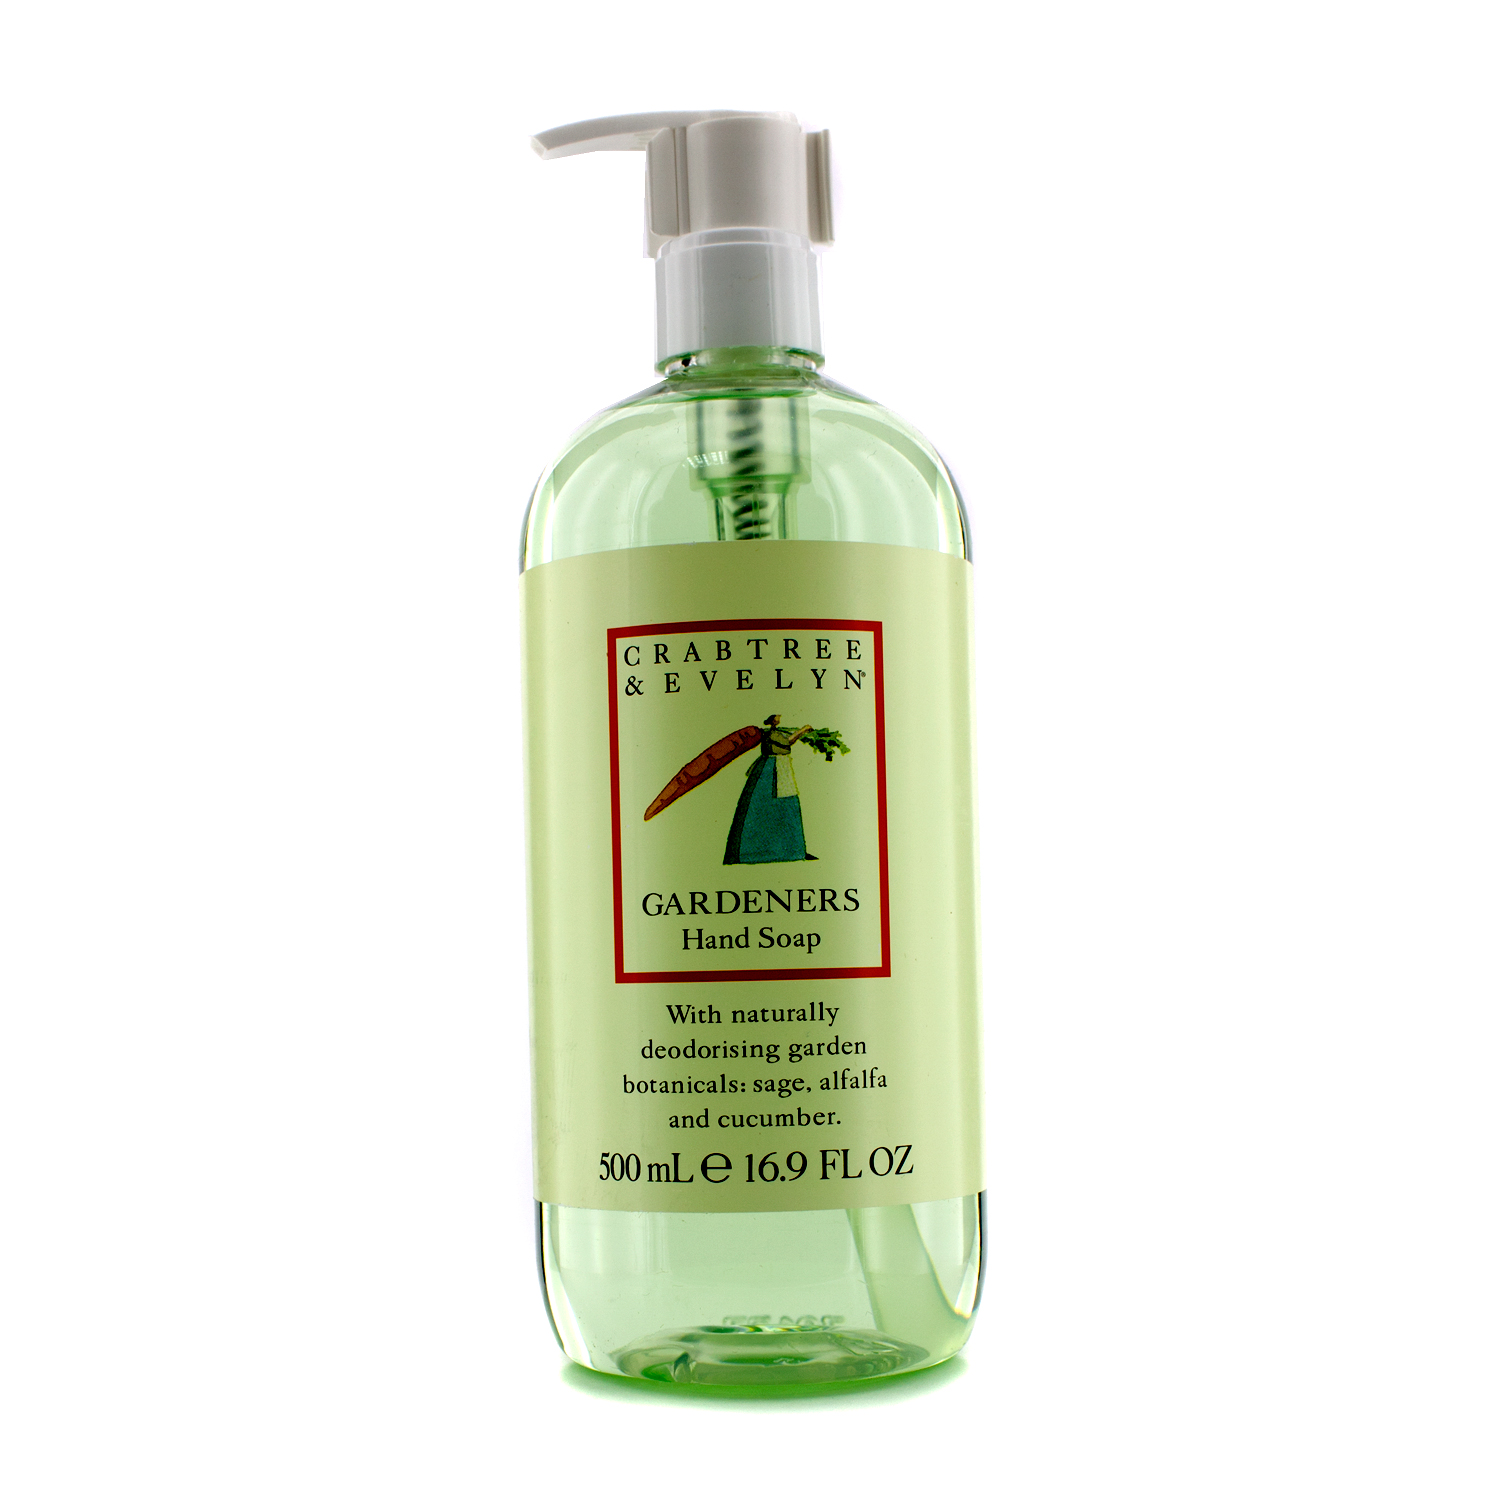 Crabtree Evelyn Gardeners Hand Soap 500ml169oz Walmartcom